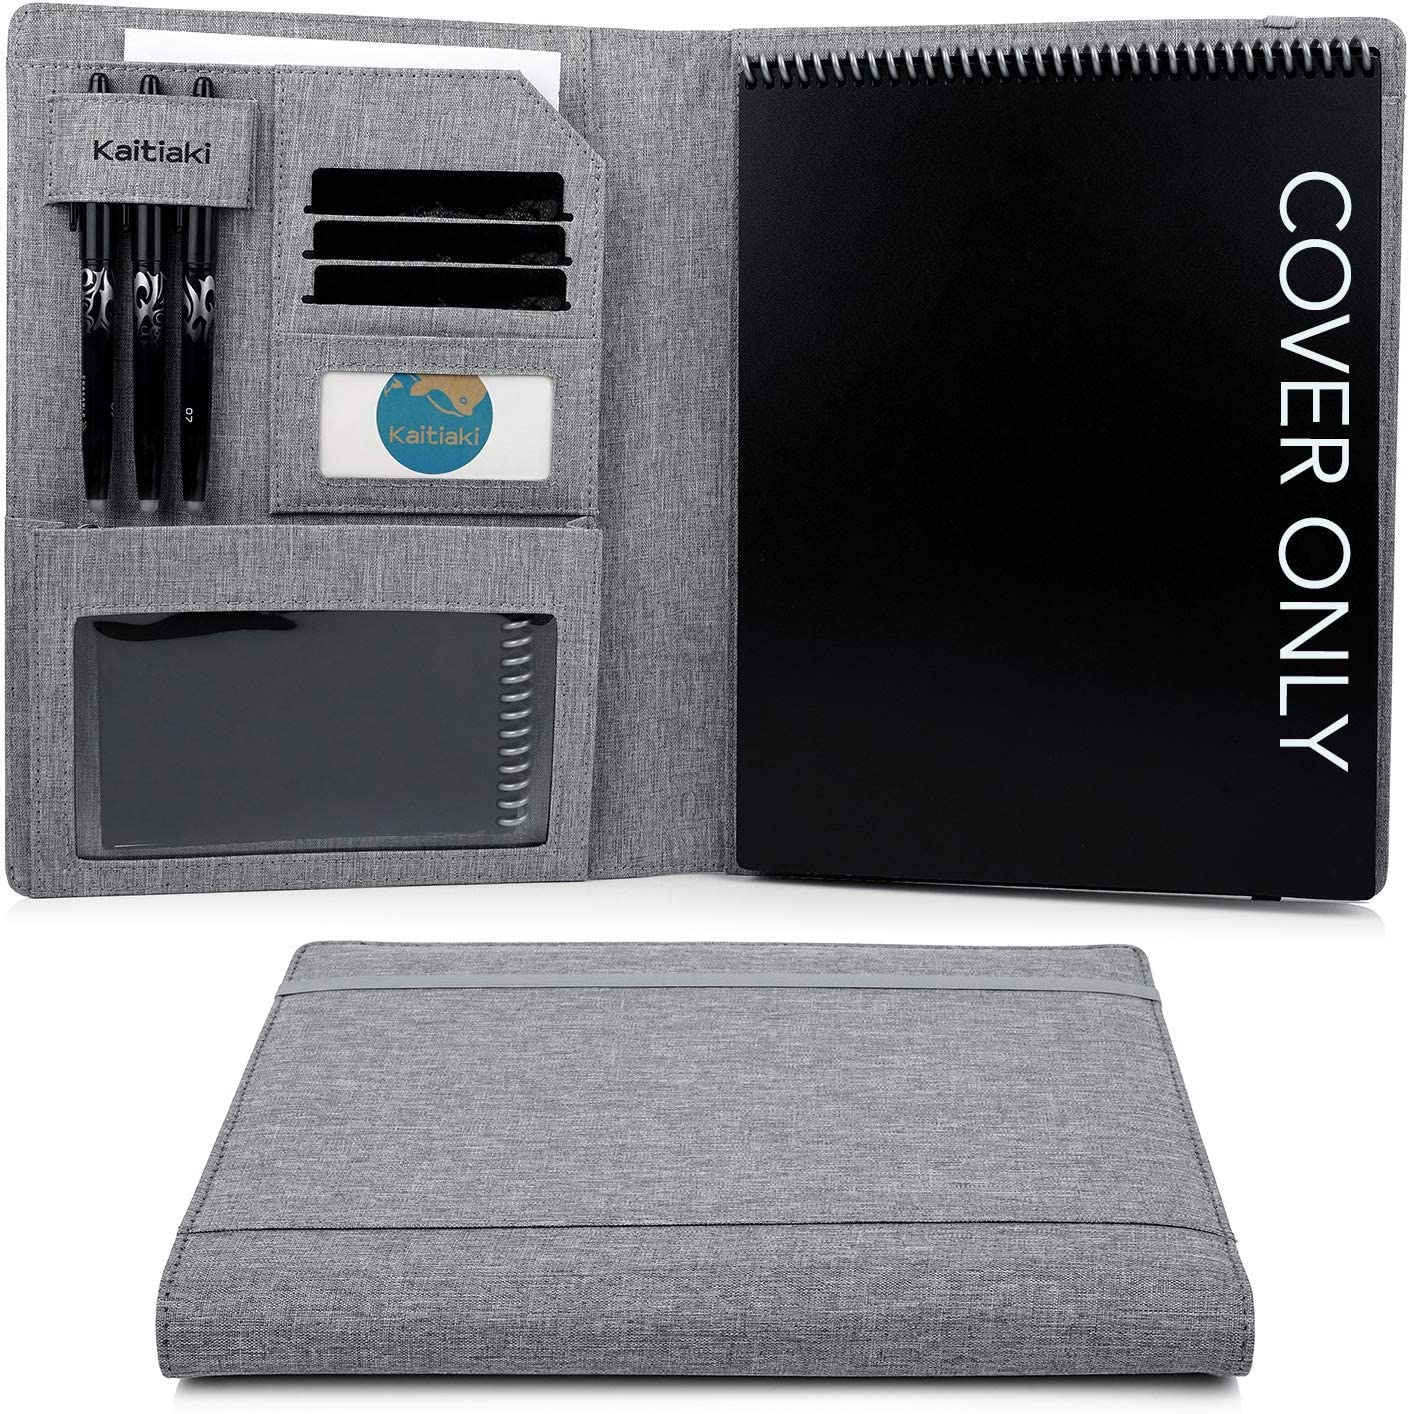 Award Kaitiaki Folio Cover Compatible Organized Rocketbook Year-end annual account with Flip